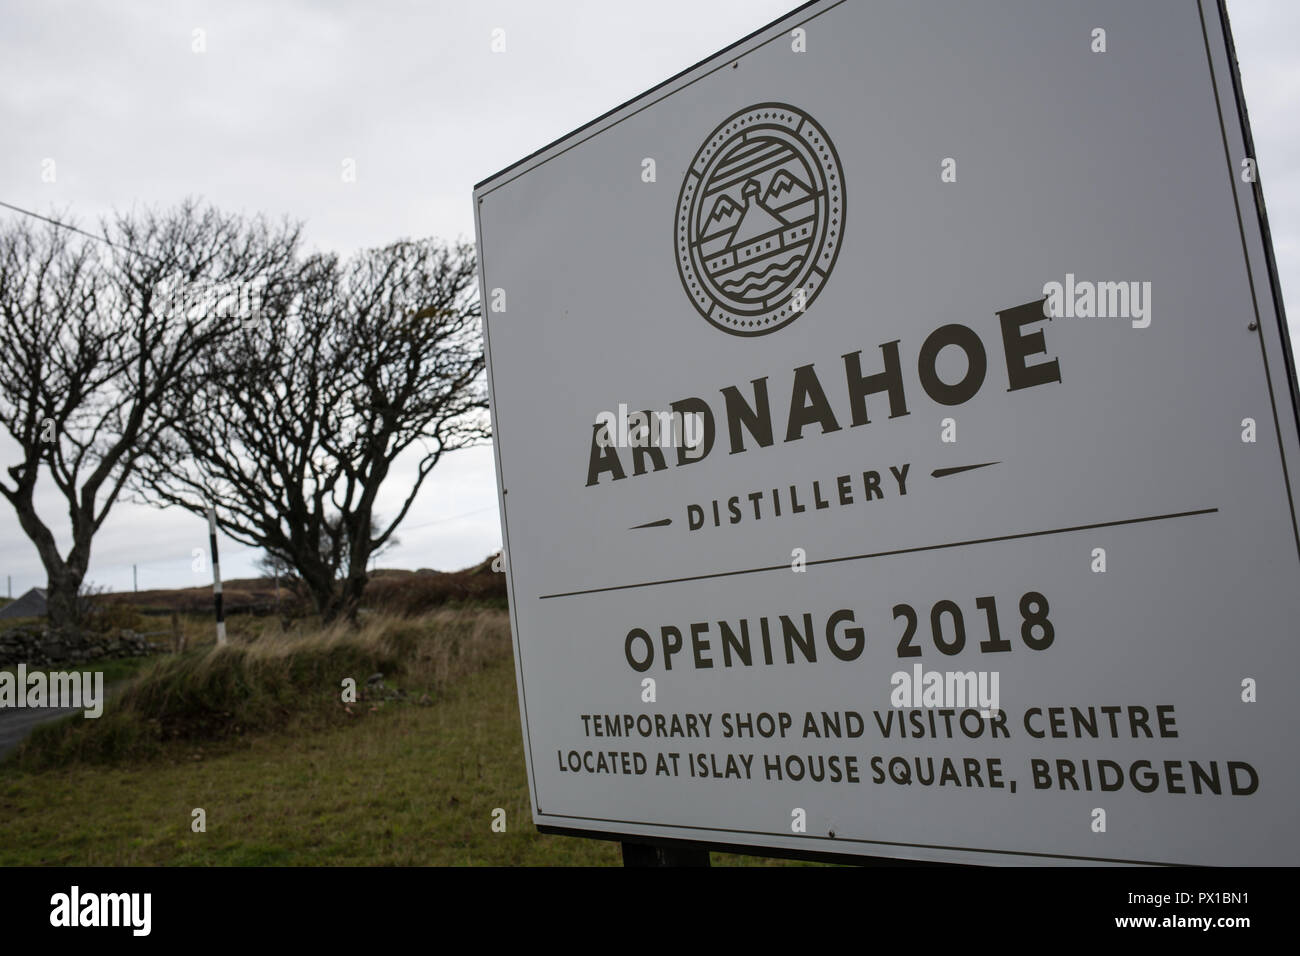 Ardnahoe whisky distillery, in Ardnahoe, Scotland, on 18 October 2018. - Stock Image